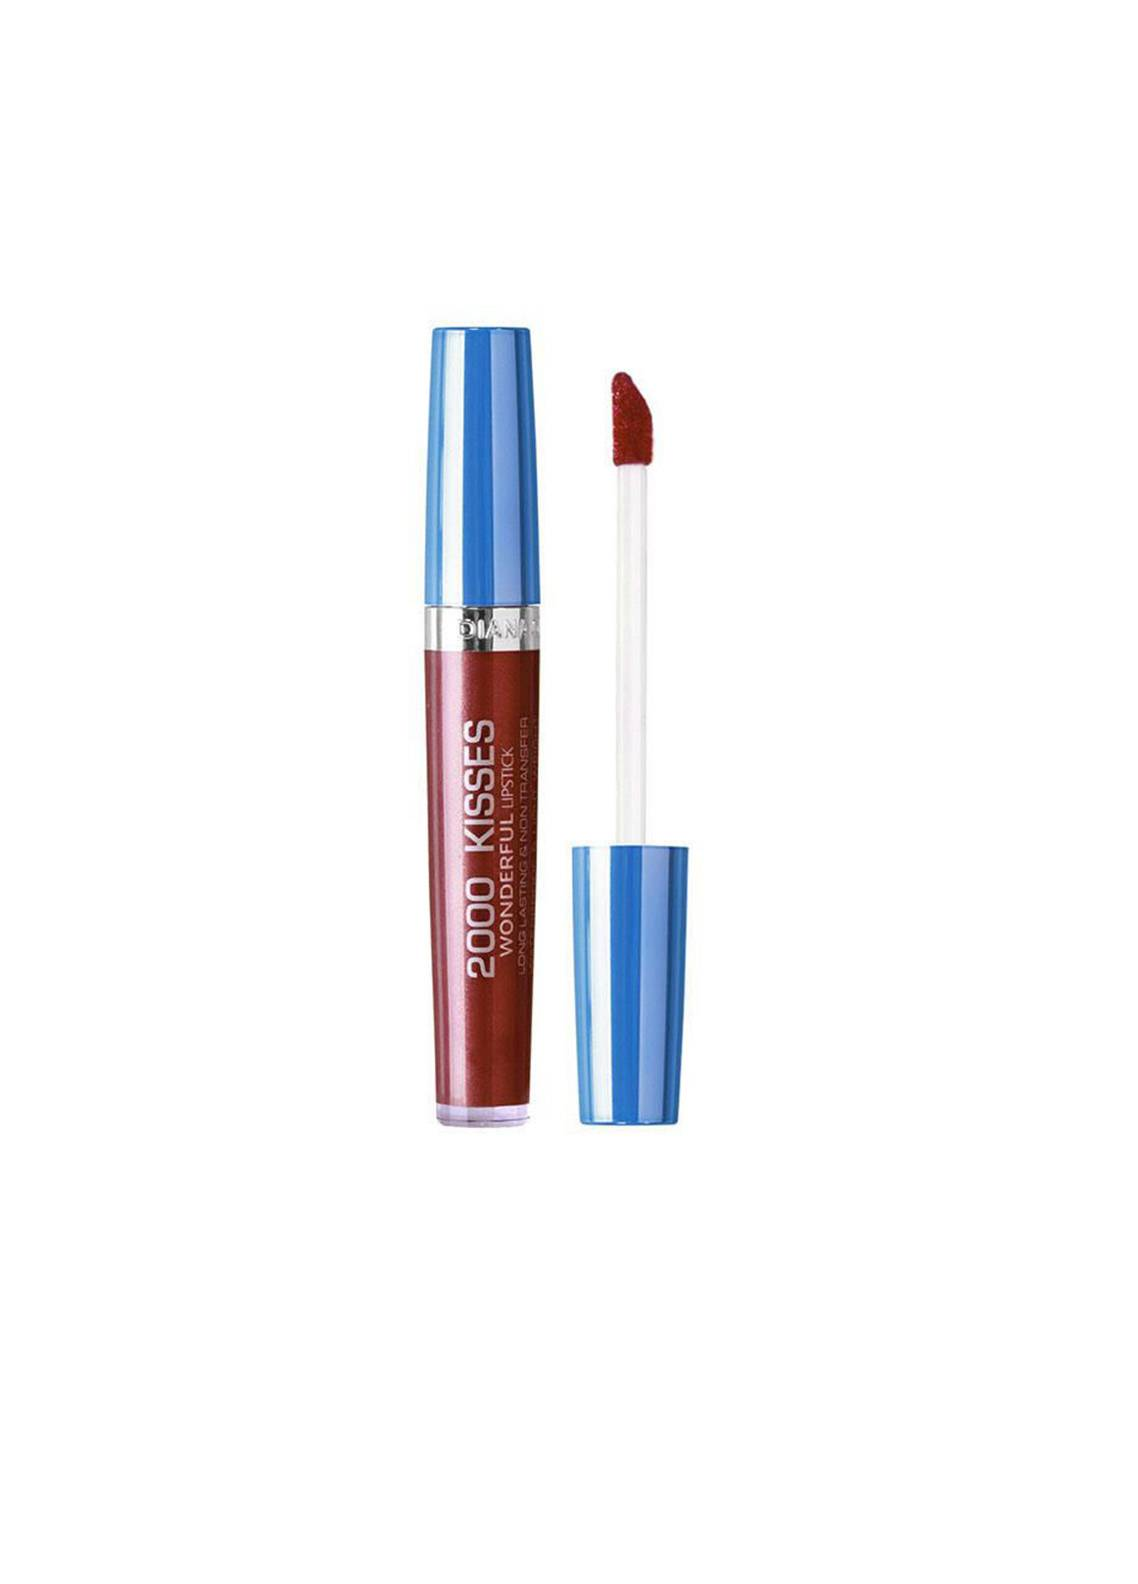 Diana Of London 2000 Kisses Wonderful Lipstick - Yours Faithfully - 41